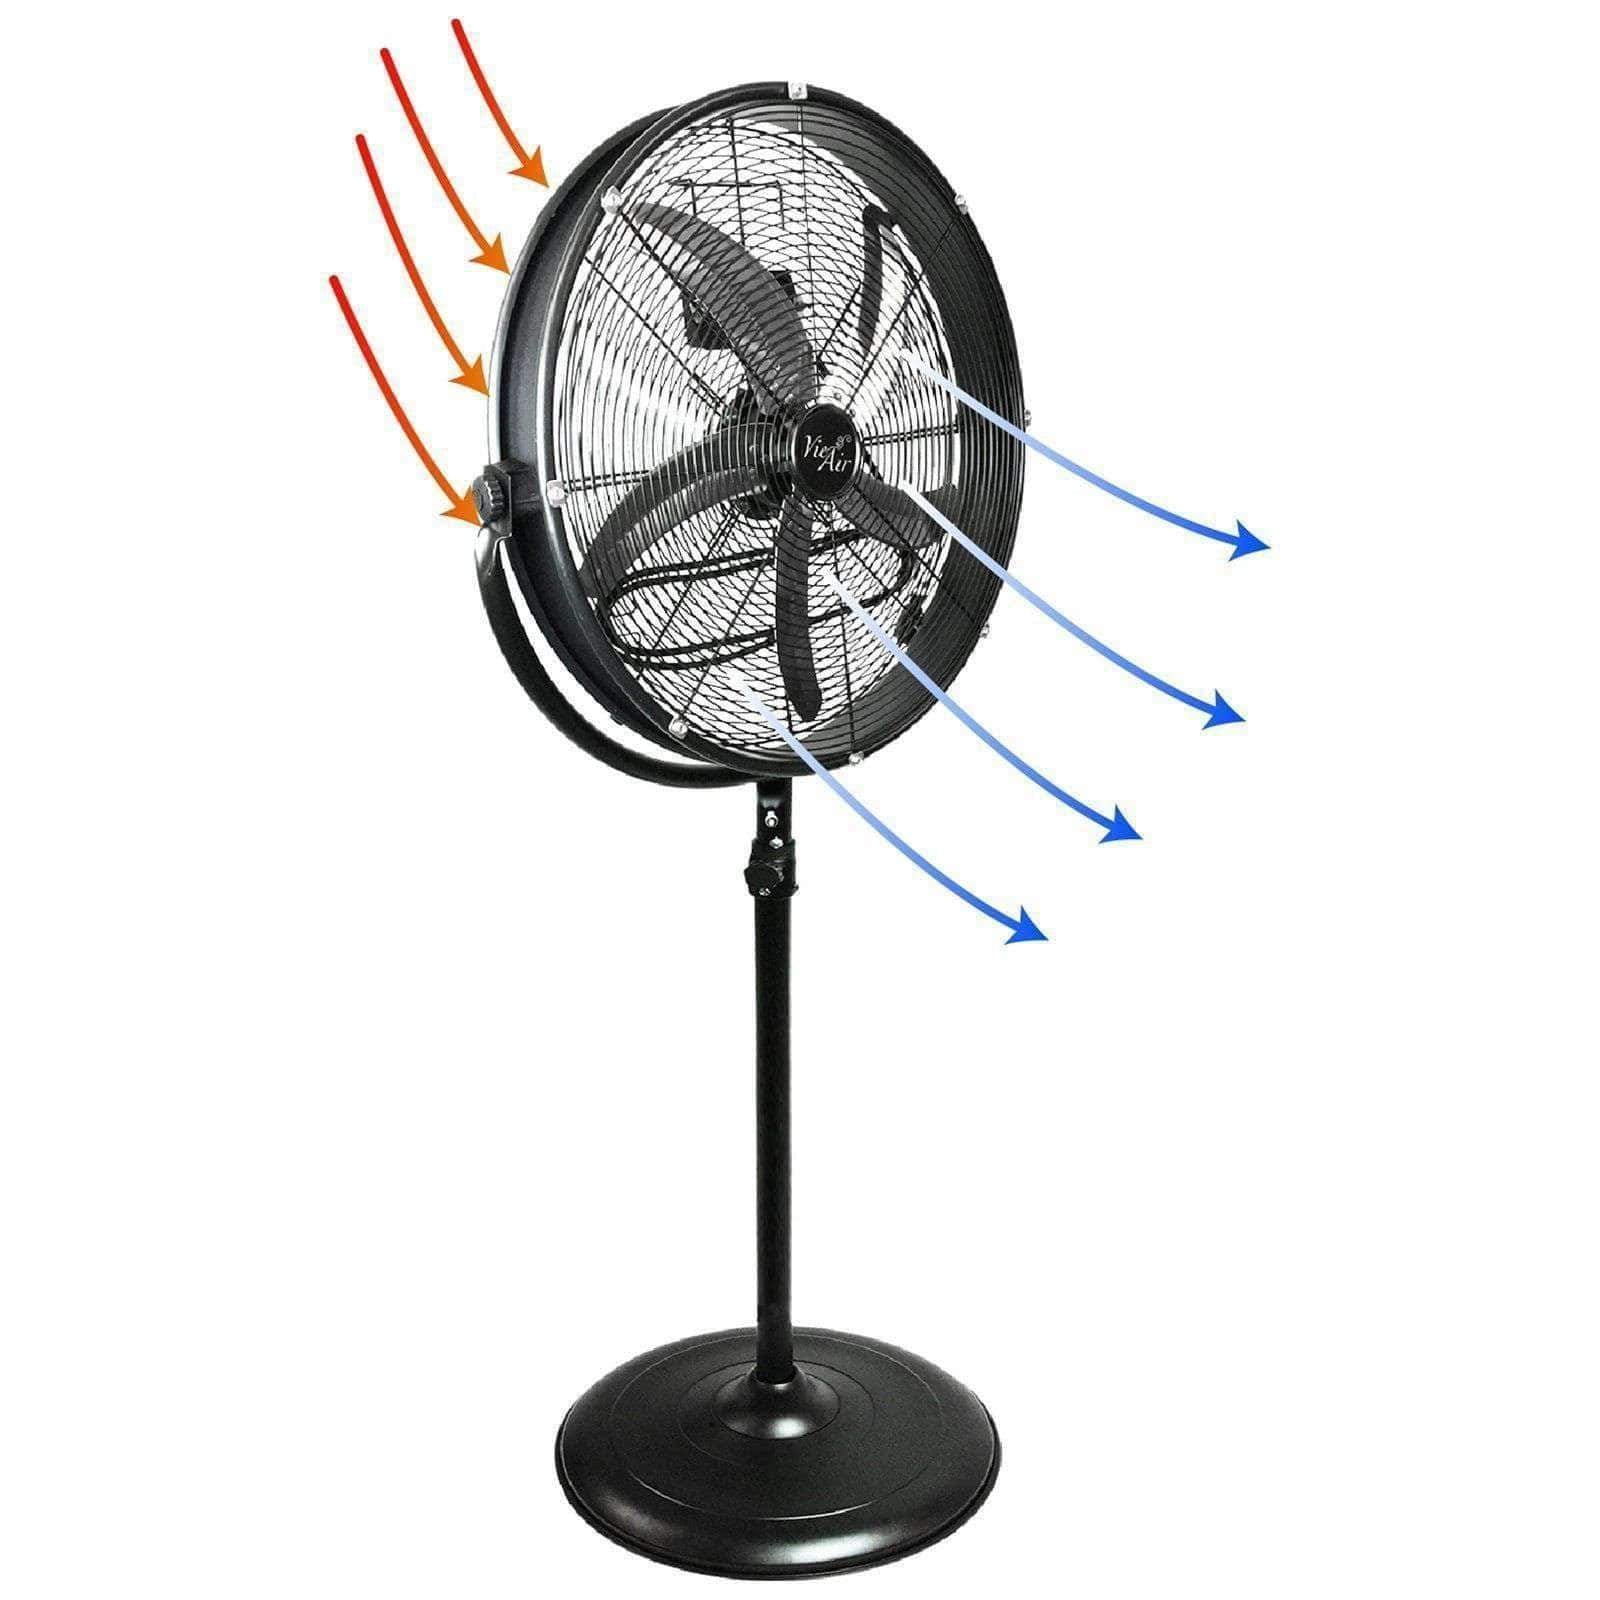 "VieAir Heaters and Fans 20"" Industrial Heavy Duty Powerful and Quiet Metal High Velocity 360 Degree Tilting Pedestal Drum Fan with 3 Speeds and 360 Degree Tilt"